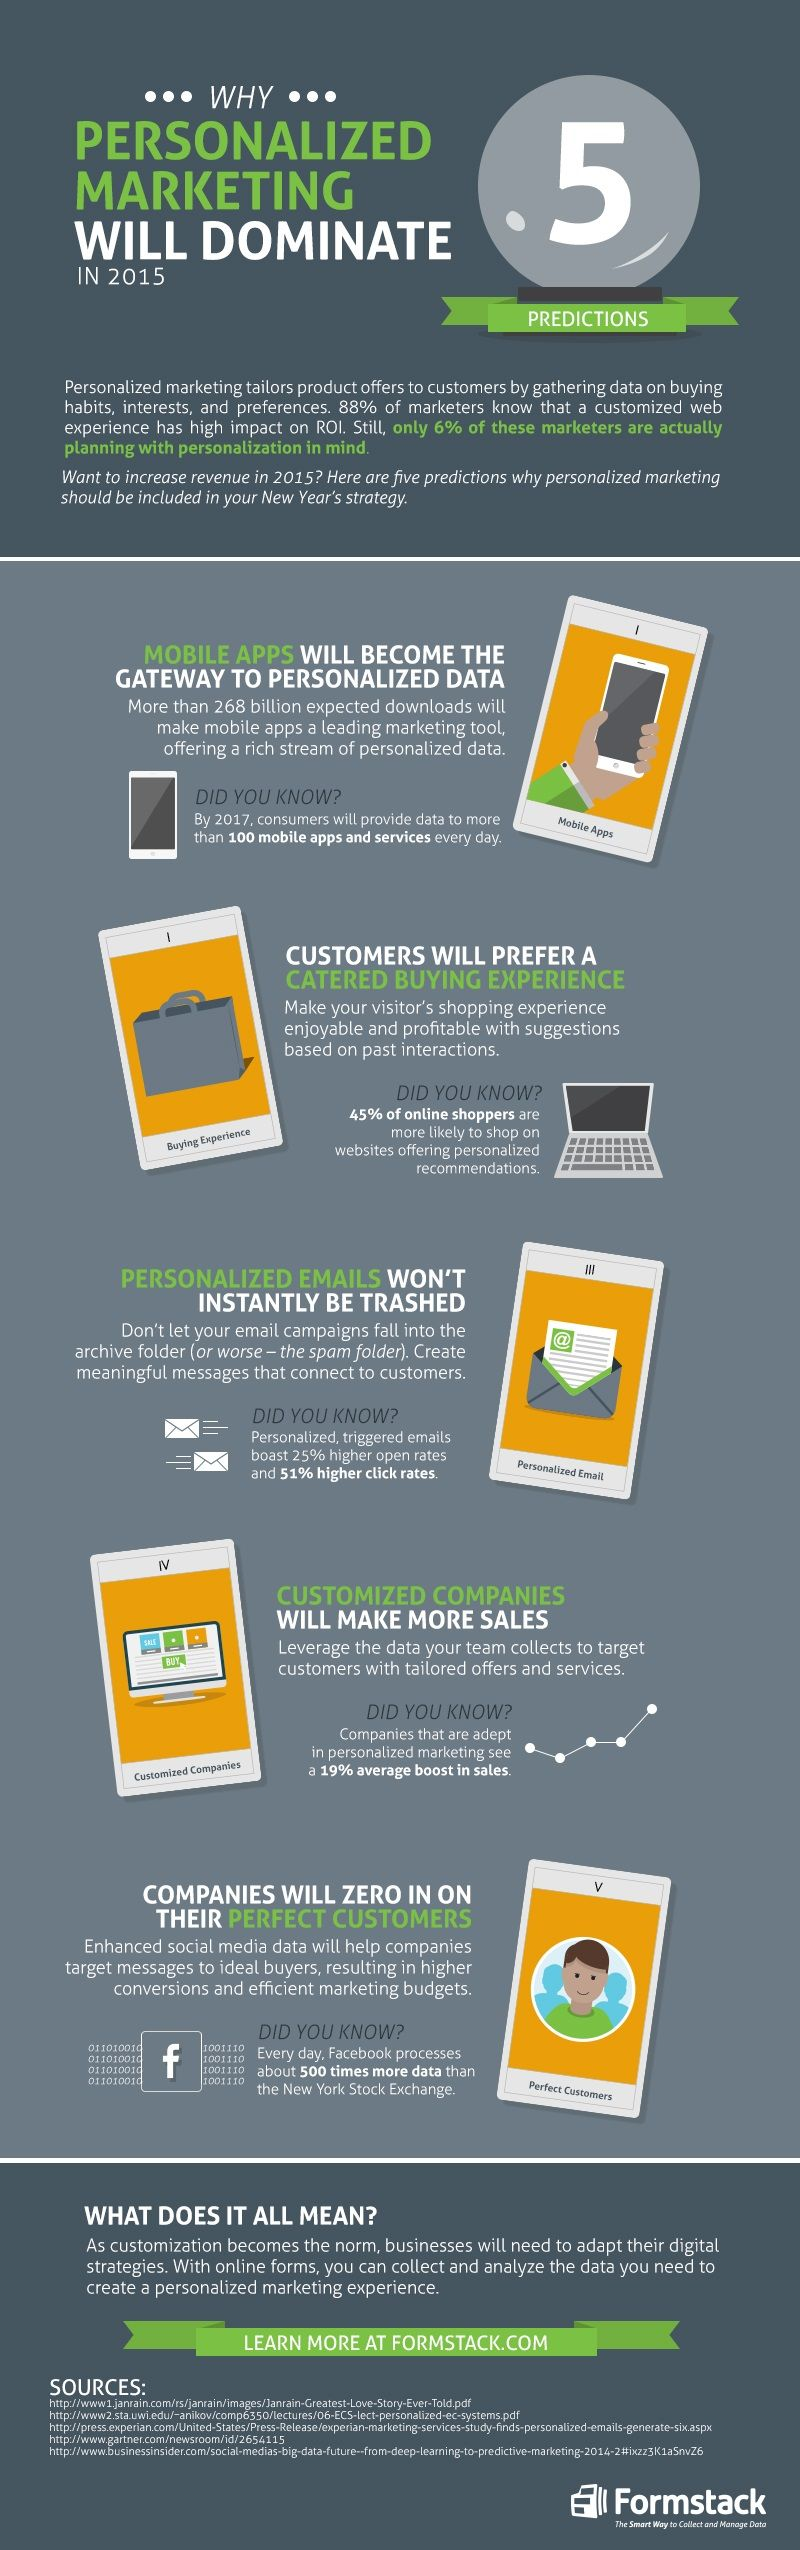 Marketing Strategy - Why Personalized #Marketing Will Dominate in 2015 [#Infographic] : MarketingProfs Article